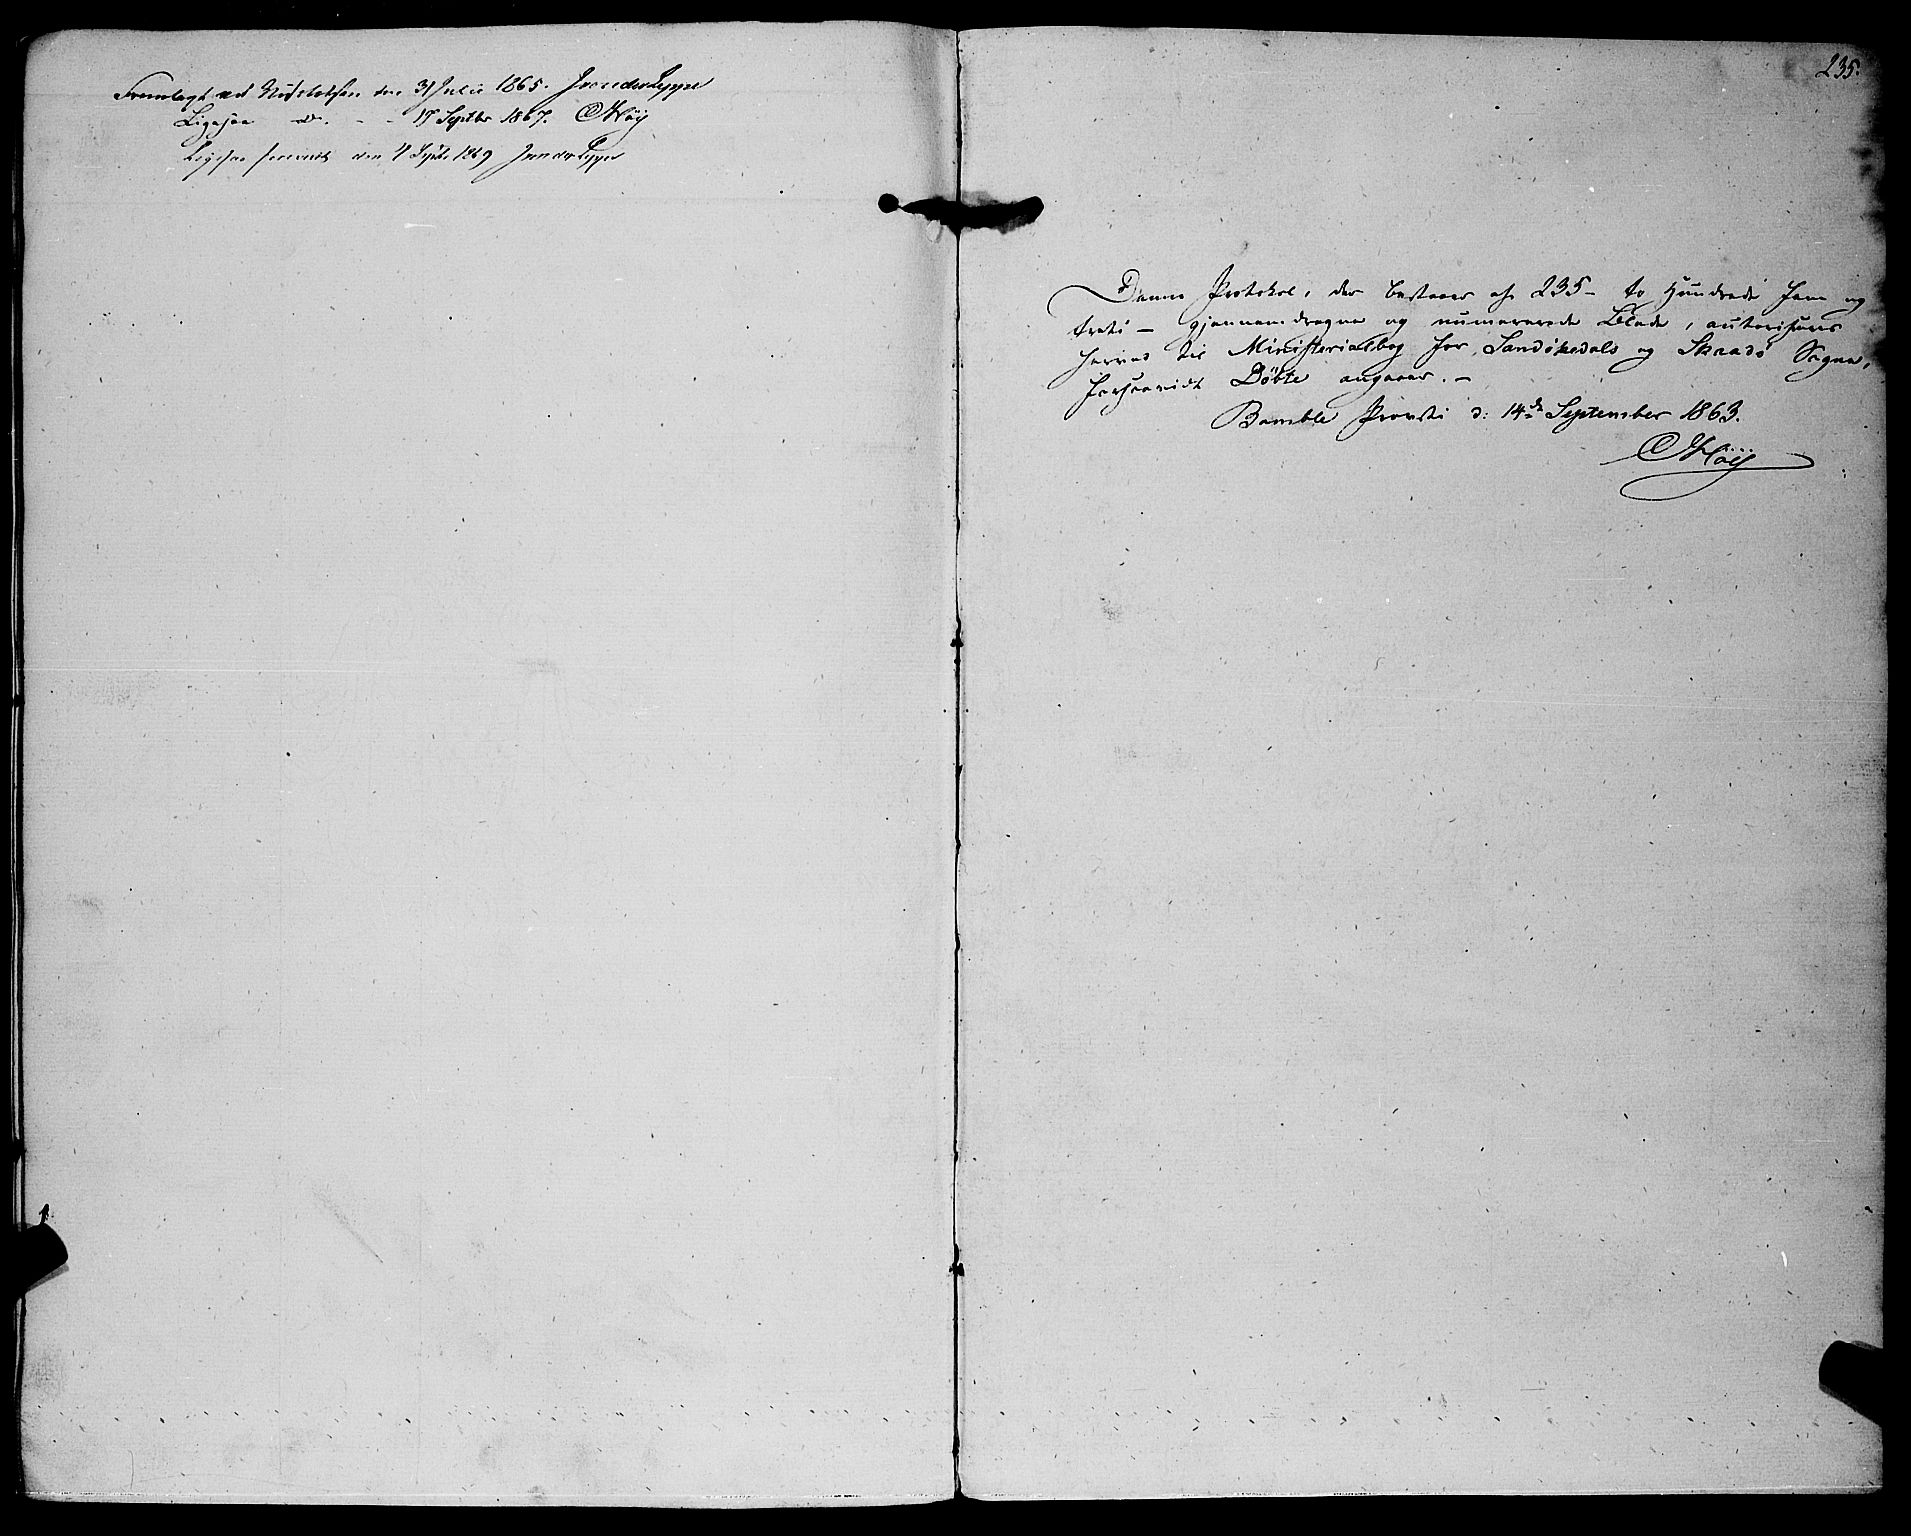 SAKO, Sannidal kirkebøker, F/Fa/L0011: Parish register (official) no. 11, 1863-1873, p. 235